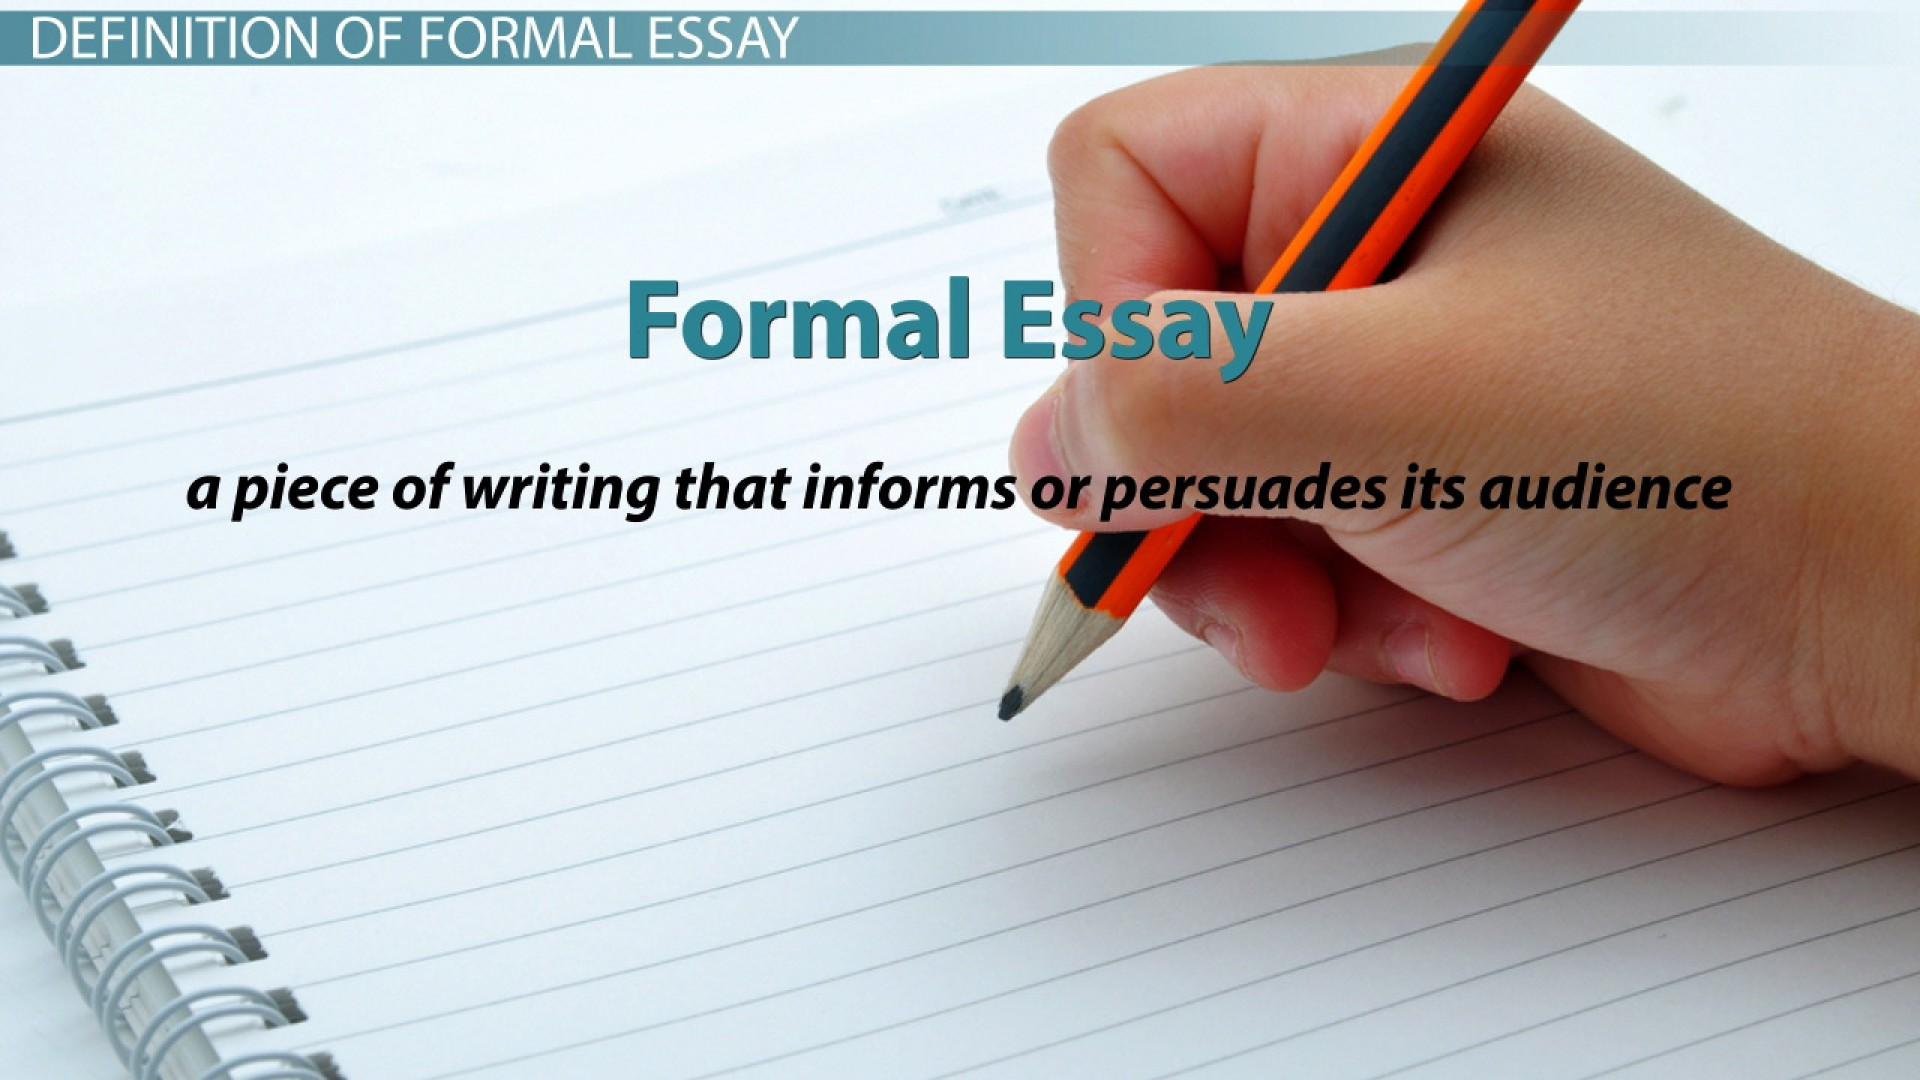 001 Essay Example  Definition Examples 111863 Best Formal Literary And Language Writing1920